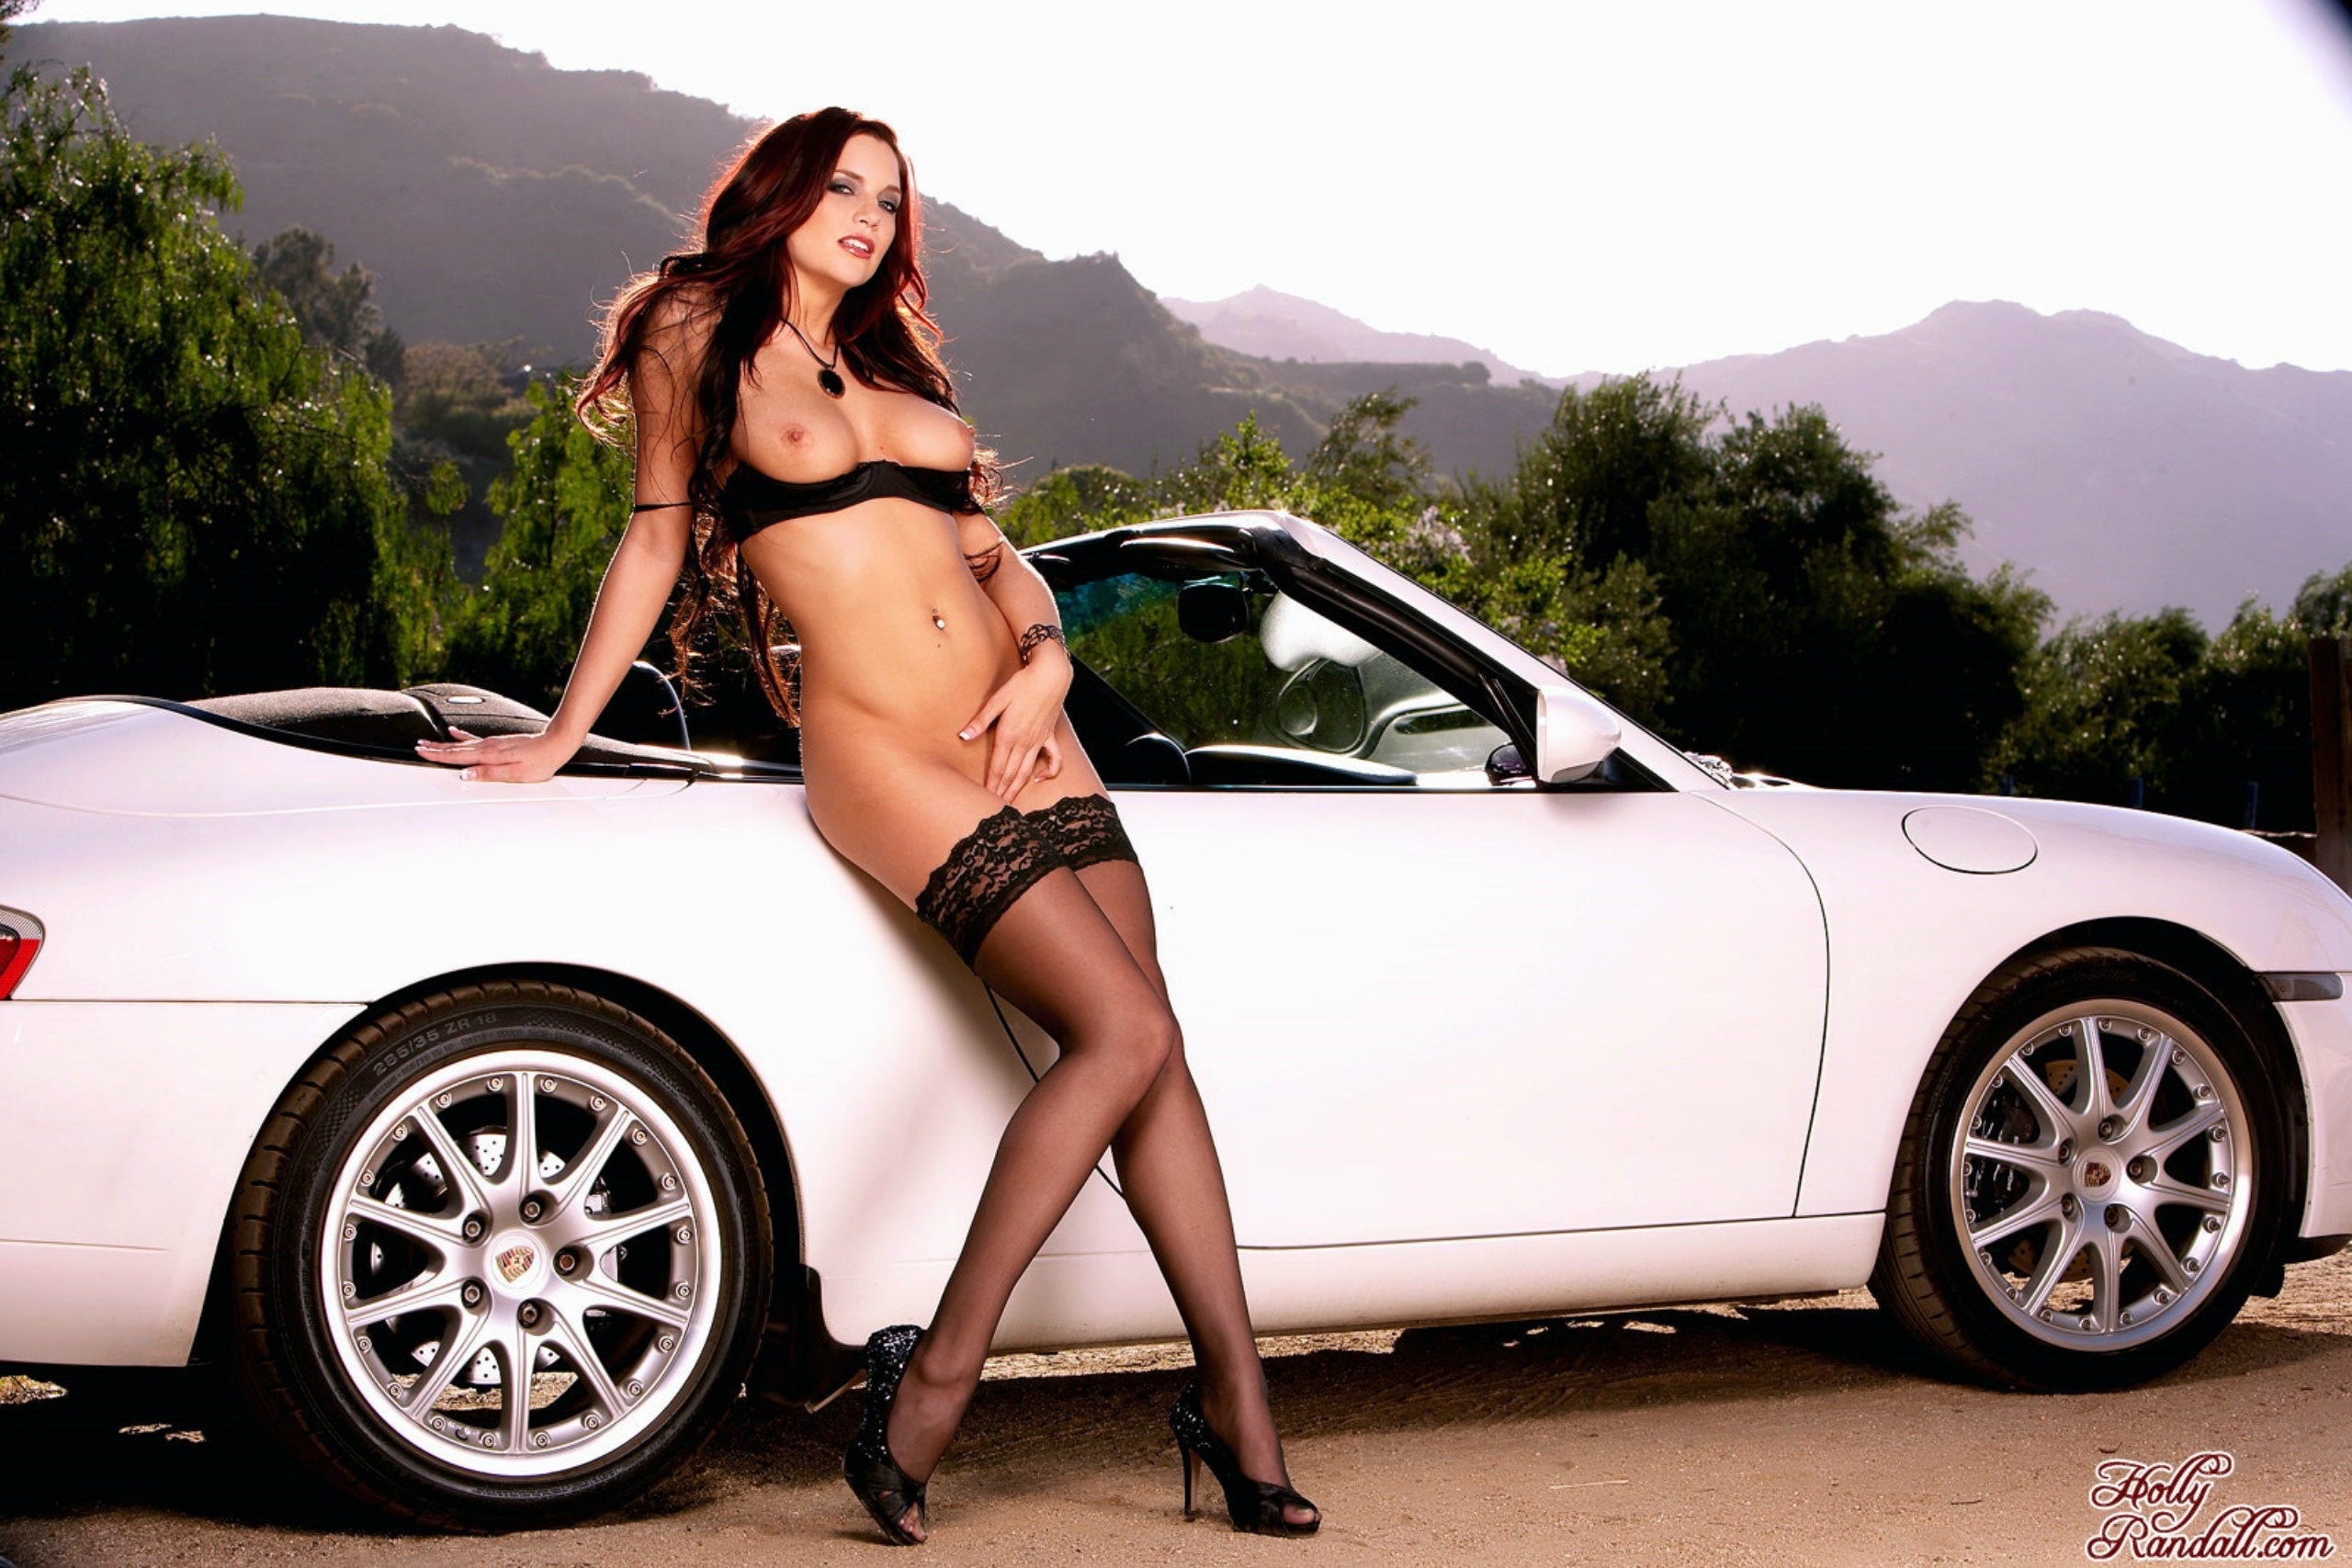 Sexy Girls and Cars Gallery Total Pro Sports